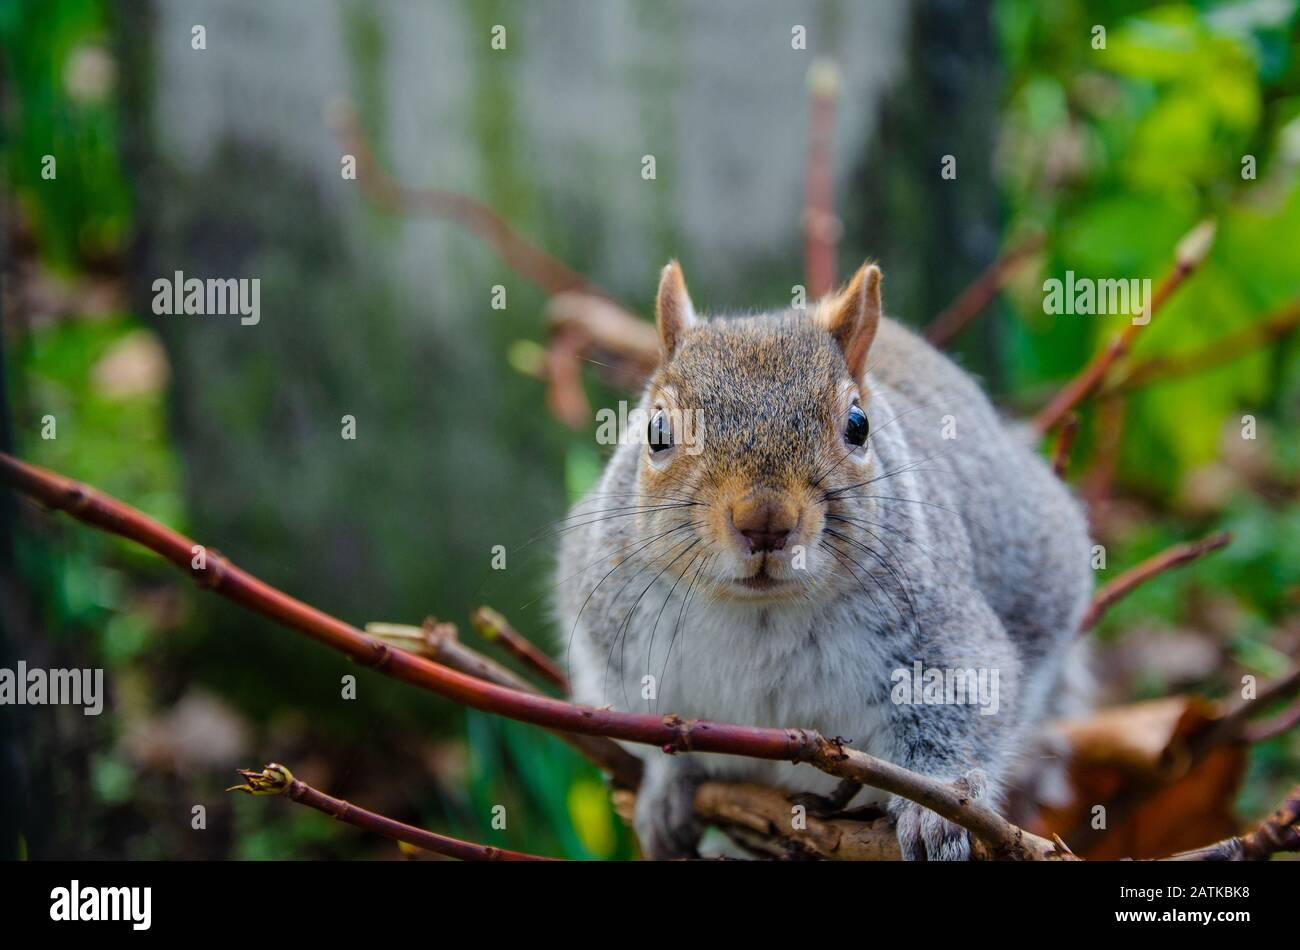 close-up-view-of-a-grey-squirrel-in-a-park-2ATKBK8.jpg